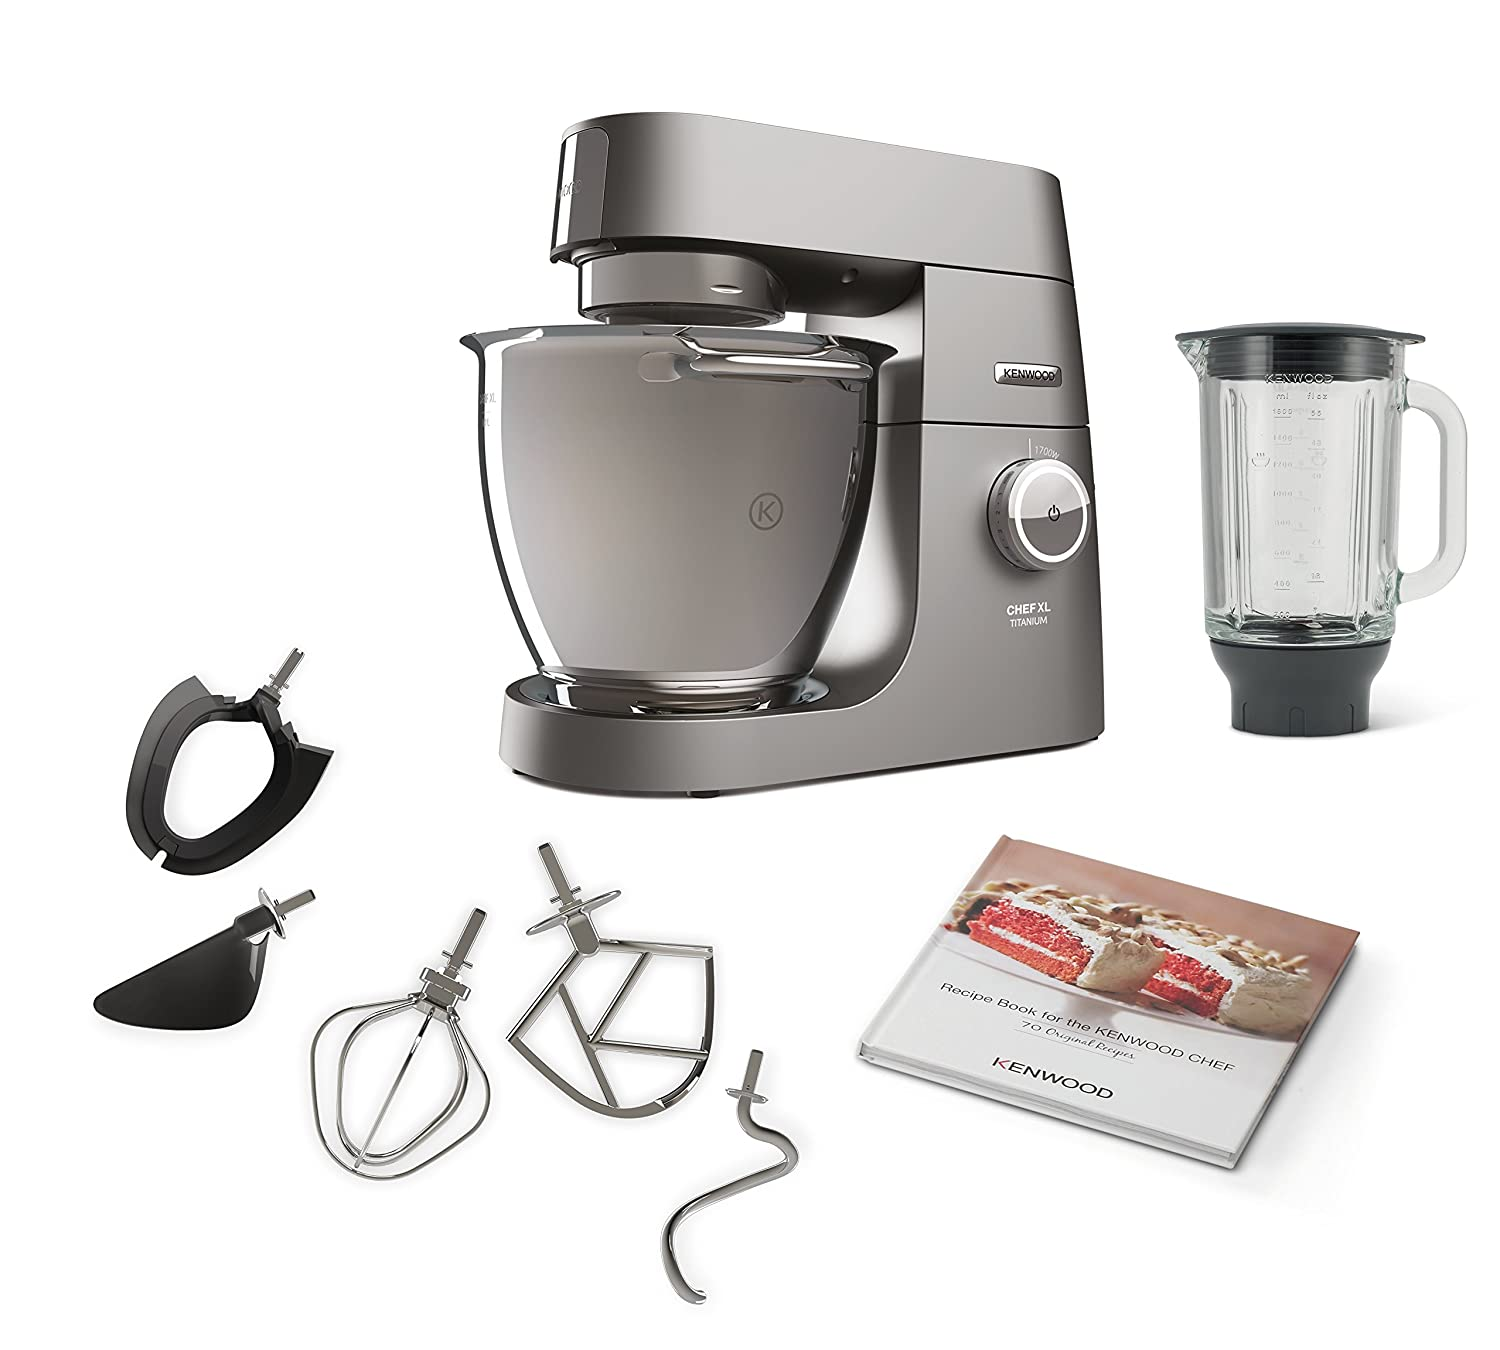 Amazon.de: Kenwood Chef XL Titanium KVL8320S Küchenmaschine (1700 W ...